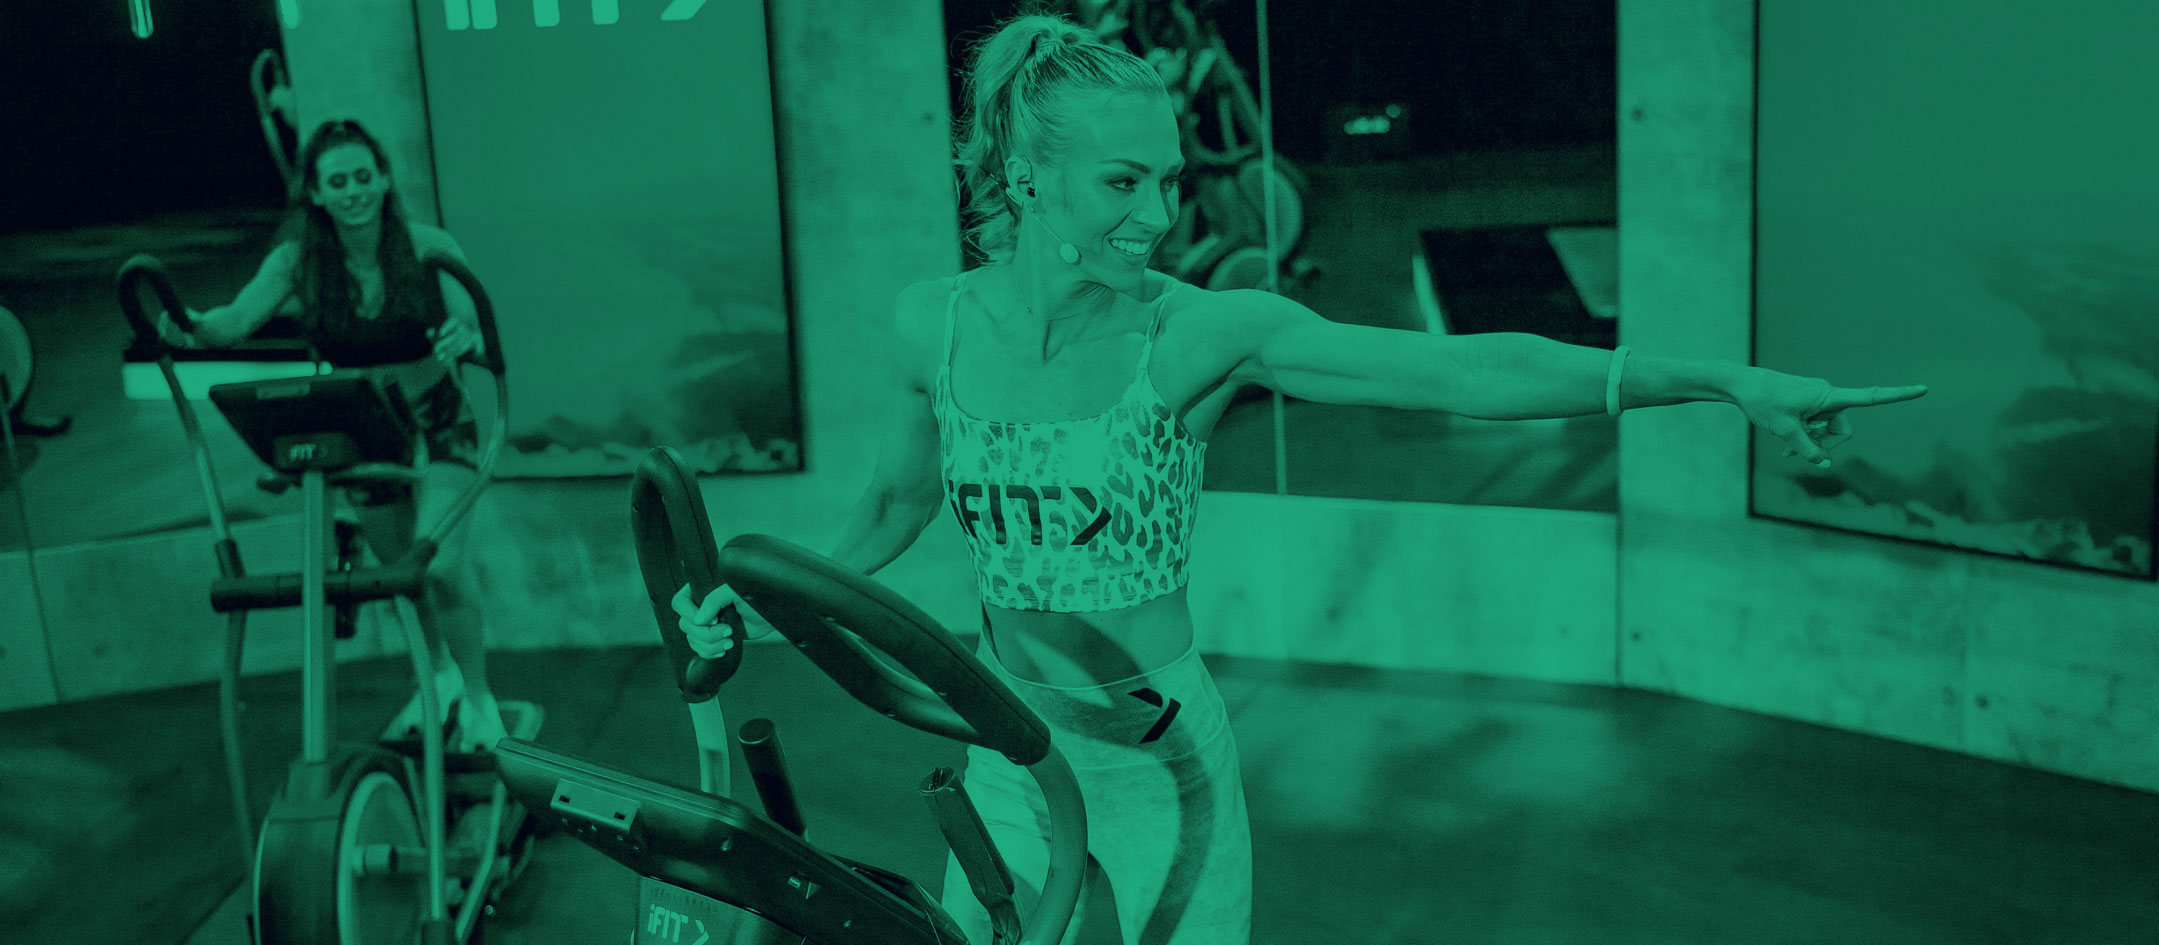 iFIT trainer on an elliptical